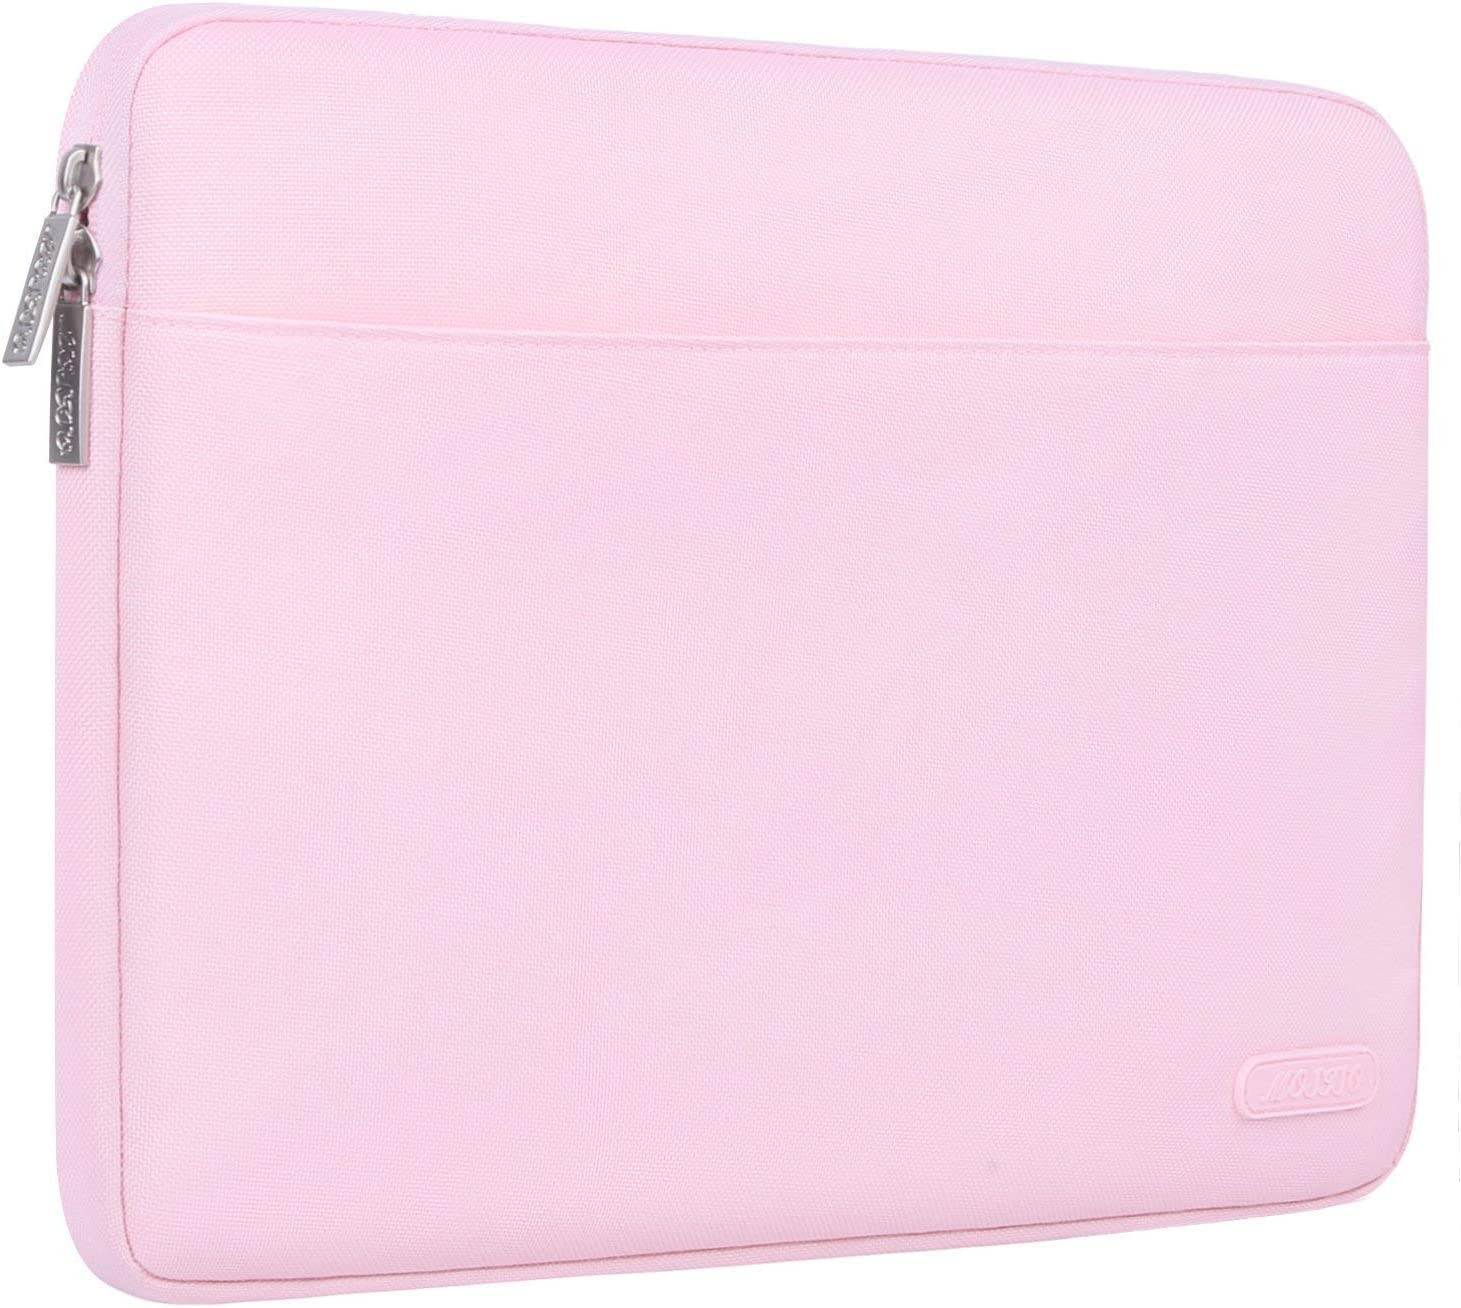 MOSISO 360 Protective Laptop Sleeve Compatible with 13-13.3 inch MacBook Pro, MacBook Air, Notebook with Back Handy Strap, Shockproof Polyester Bag Drop-Proof Carrying Case Cover, Pink